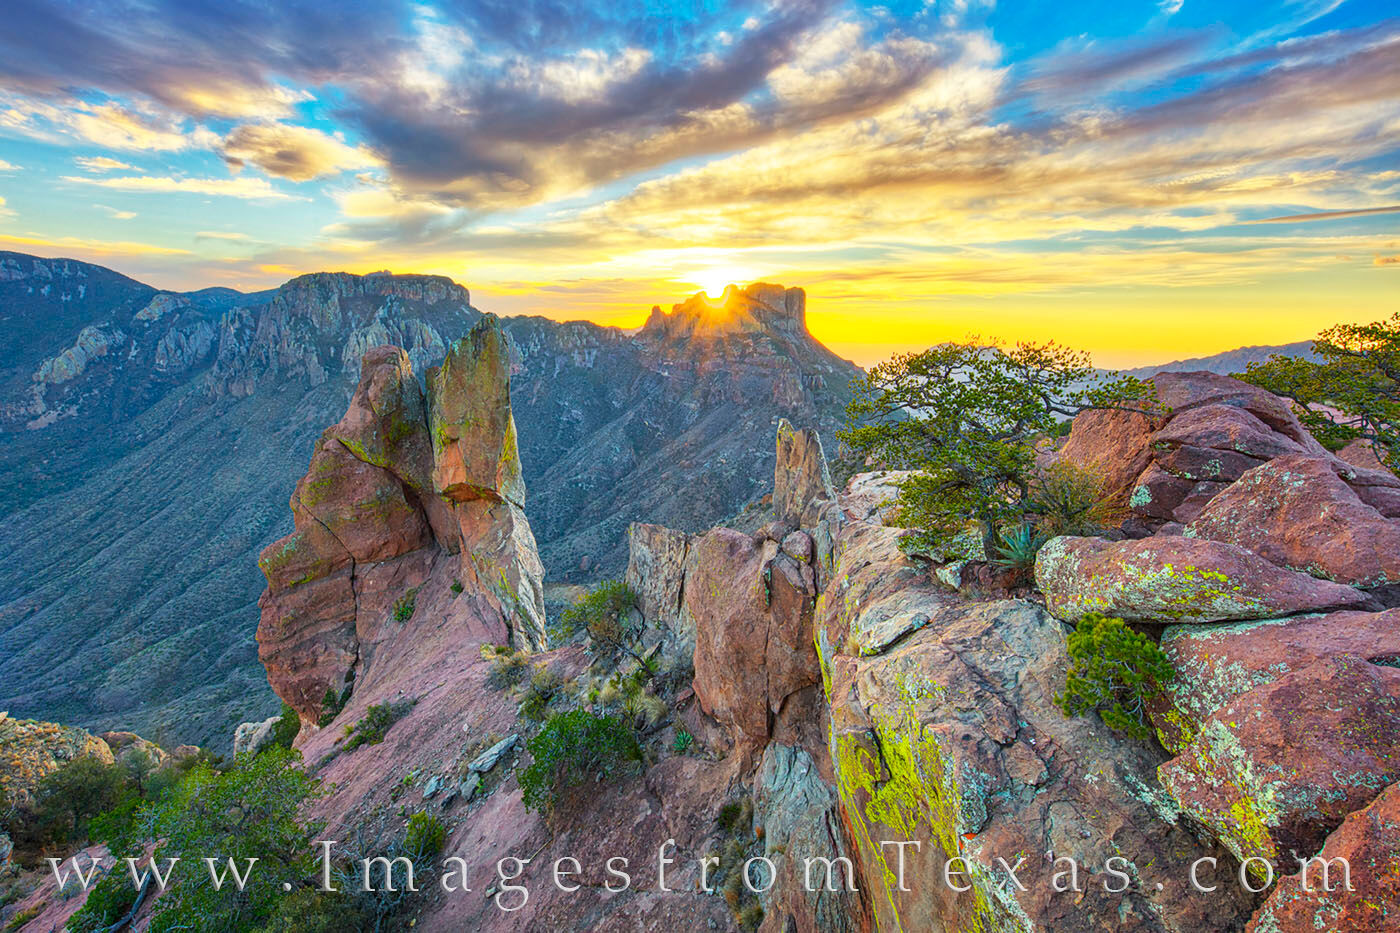 big bend national park, big bend images, lost mine trail, chisos mountains, texas national park, texas sunset, sunset, lost mine trail photos, hiking texas, texas hikes, photo